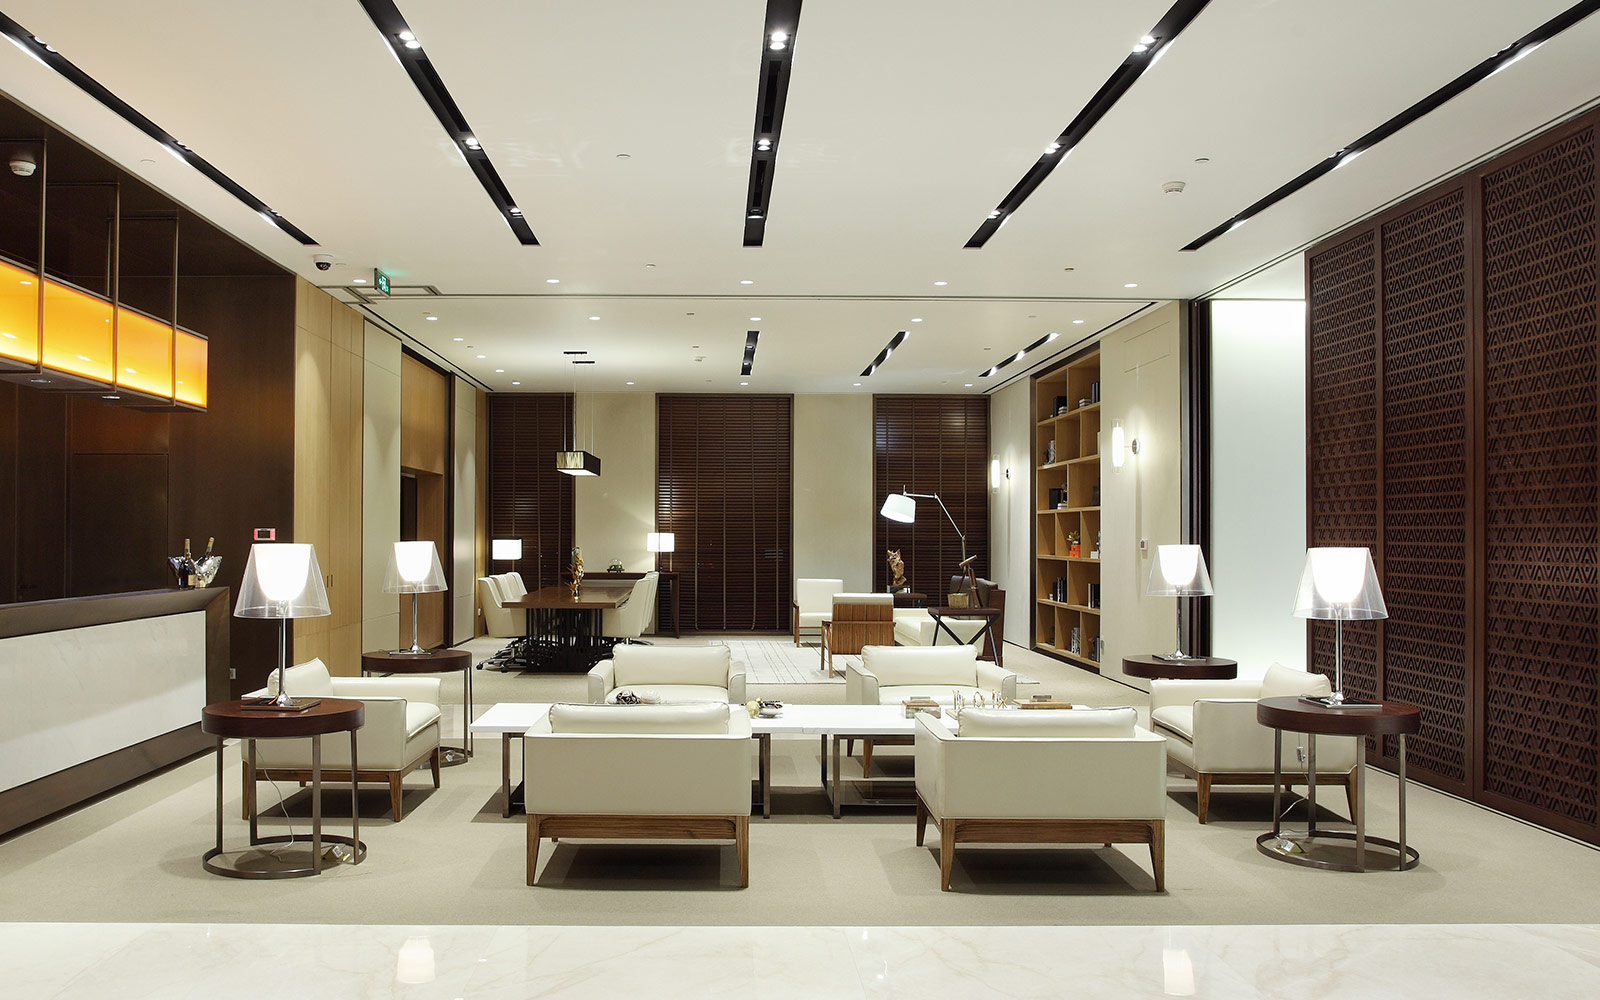 Steven leach group ping an private bank for Interior design agency shanghai